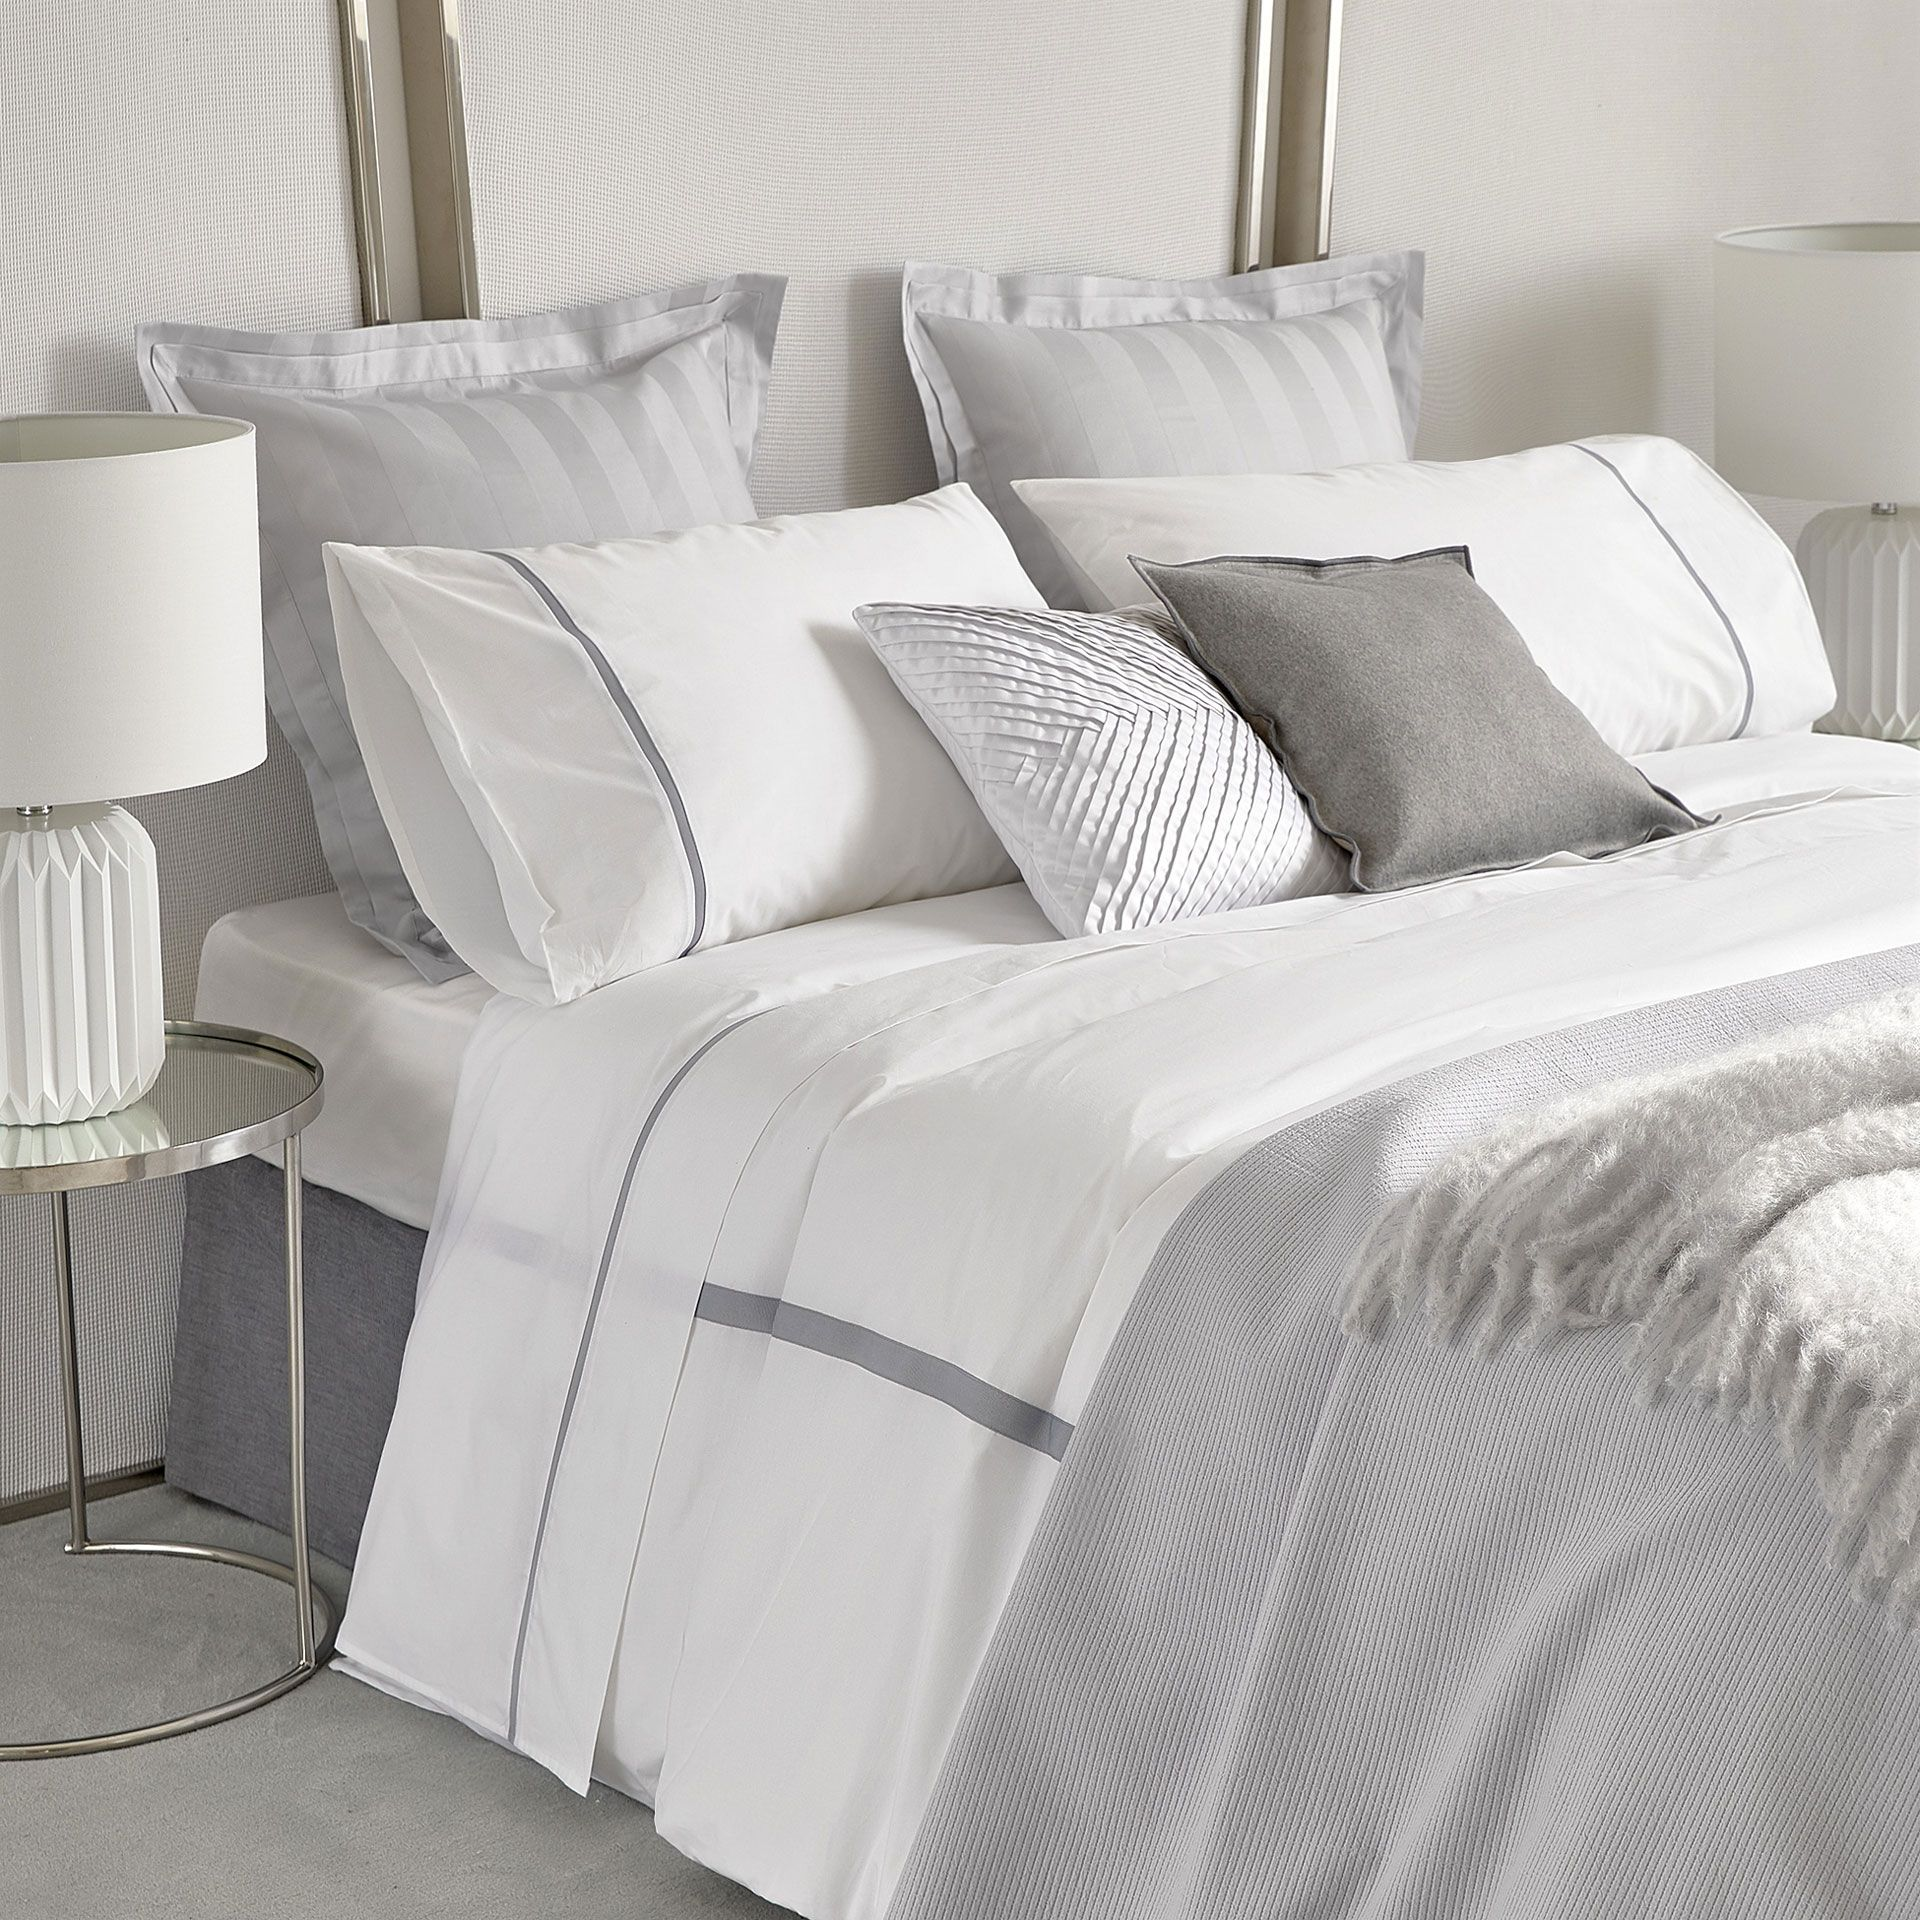 duvet dp com embroidered and cover marossy amazon tahari medallions set gray home damask grey king white kitchen